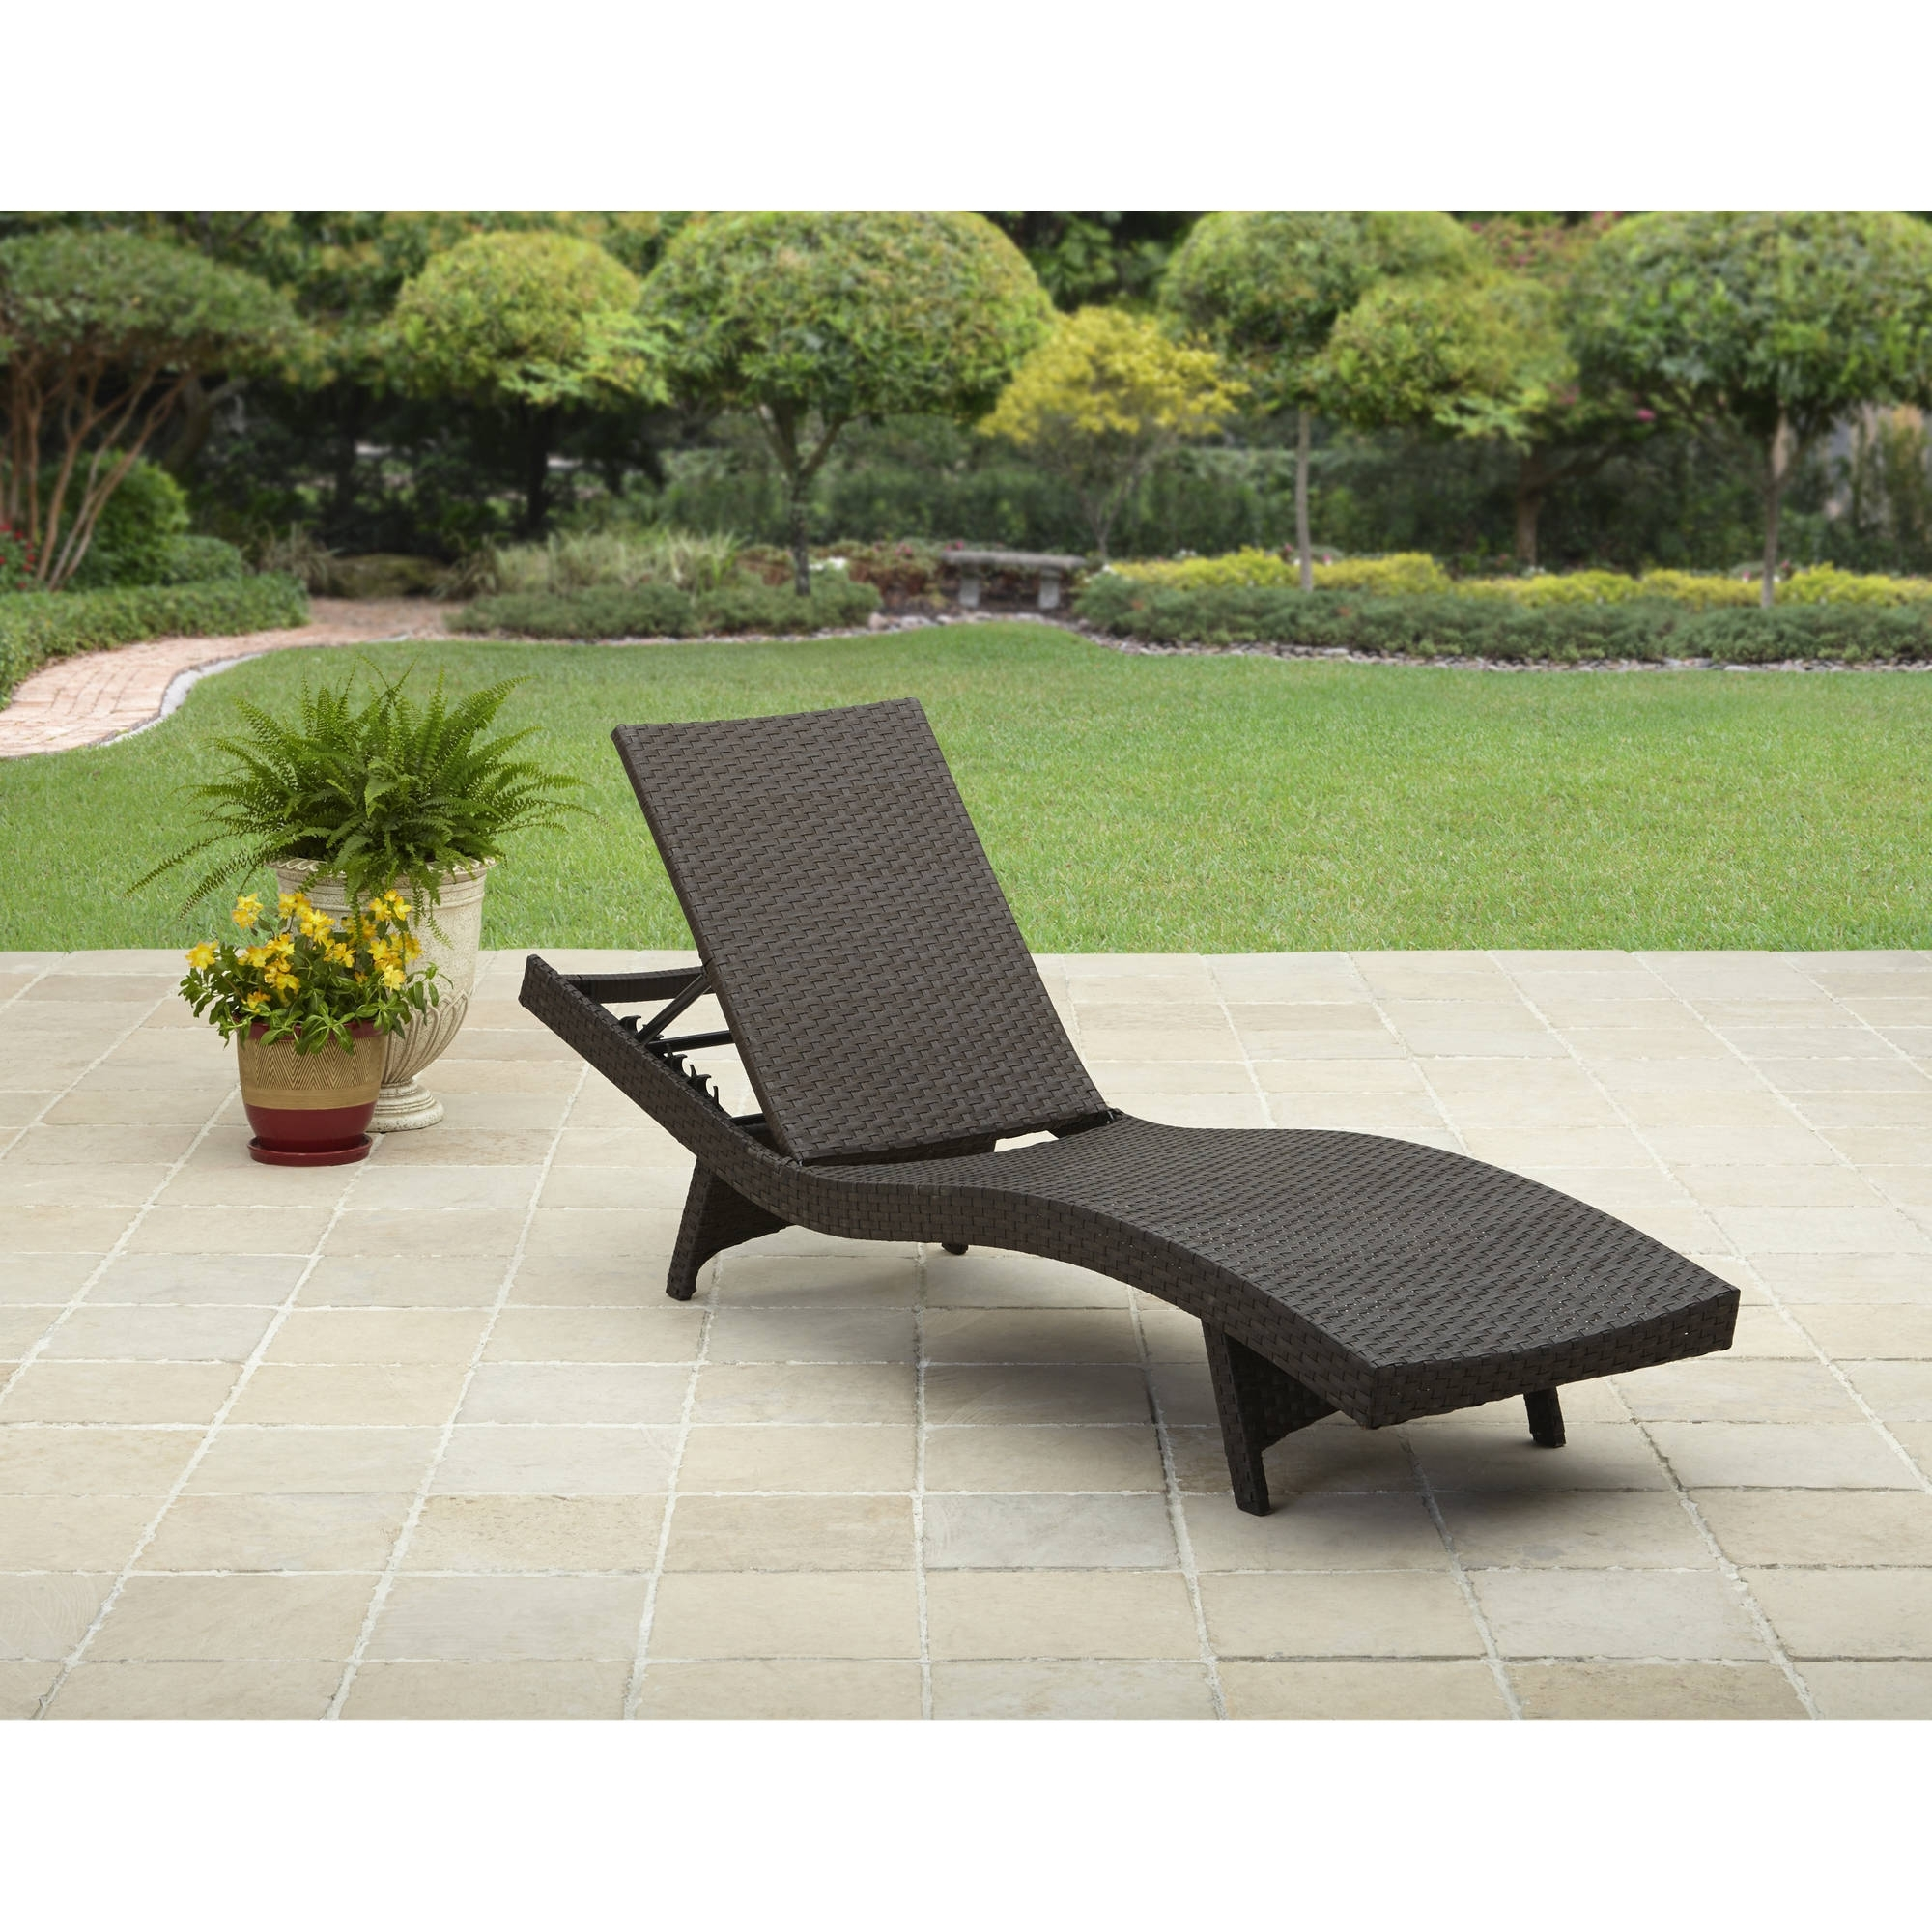 Walmart Chaise Lounges With Favorite Better Homes And Gardens Avila Beach Chaise – Walmart (View 14 of 15)